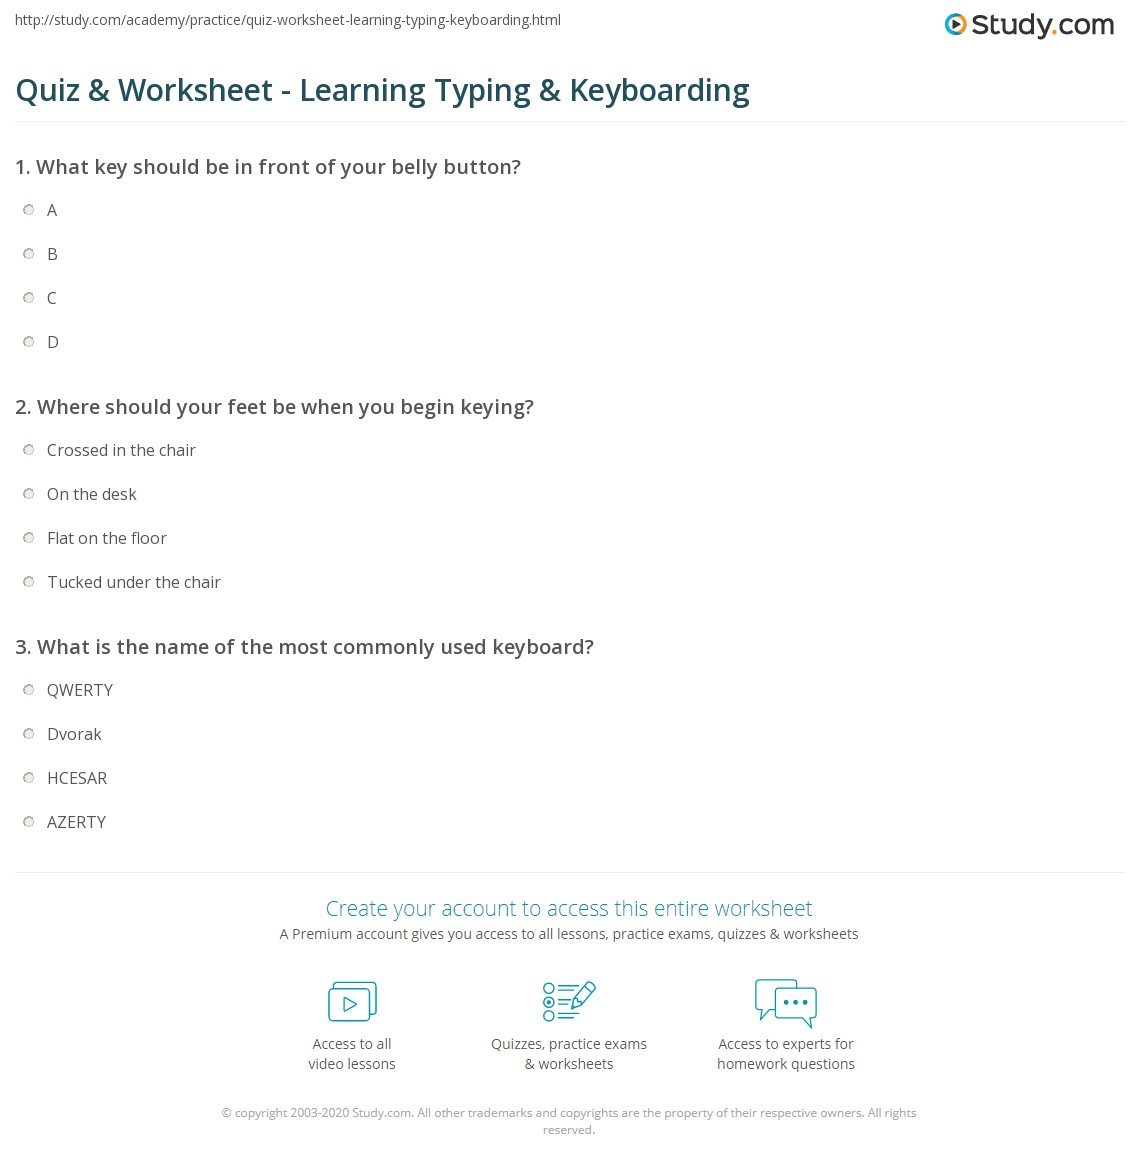 Worksheets Keyboarding Practice Worksheets quiz worksheet learning typing keyboarding study com print how to learn type worksheet